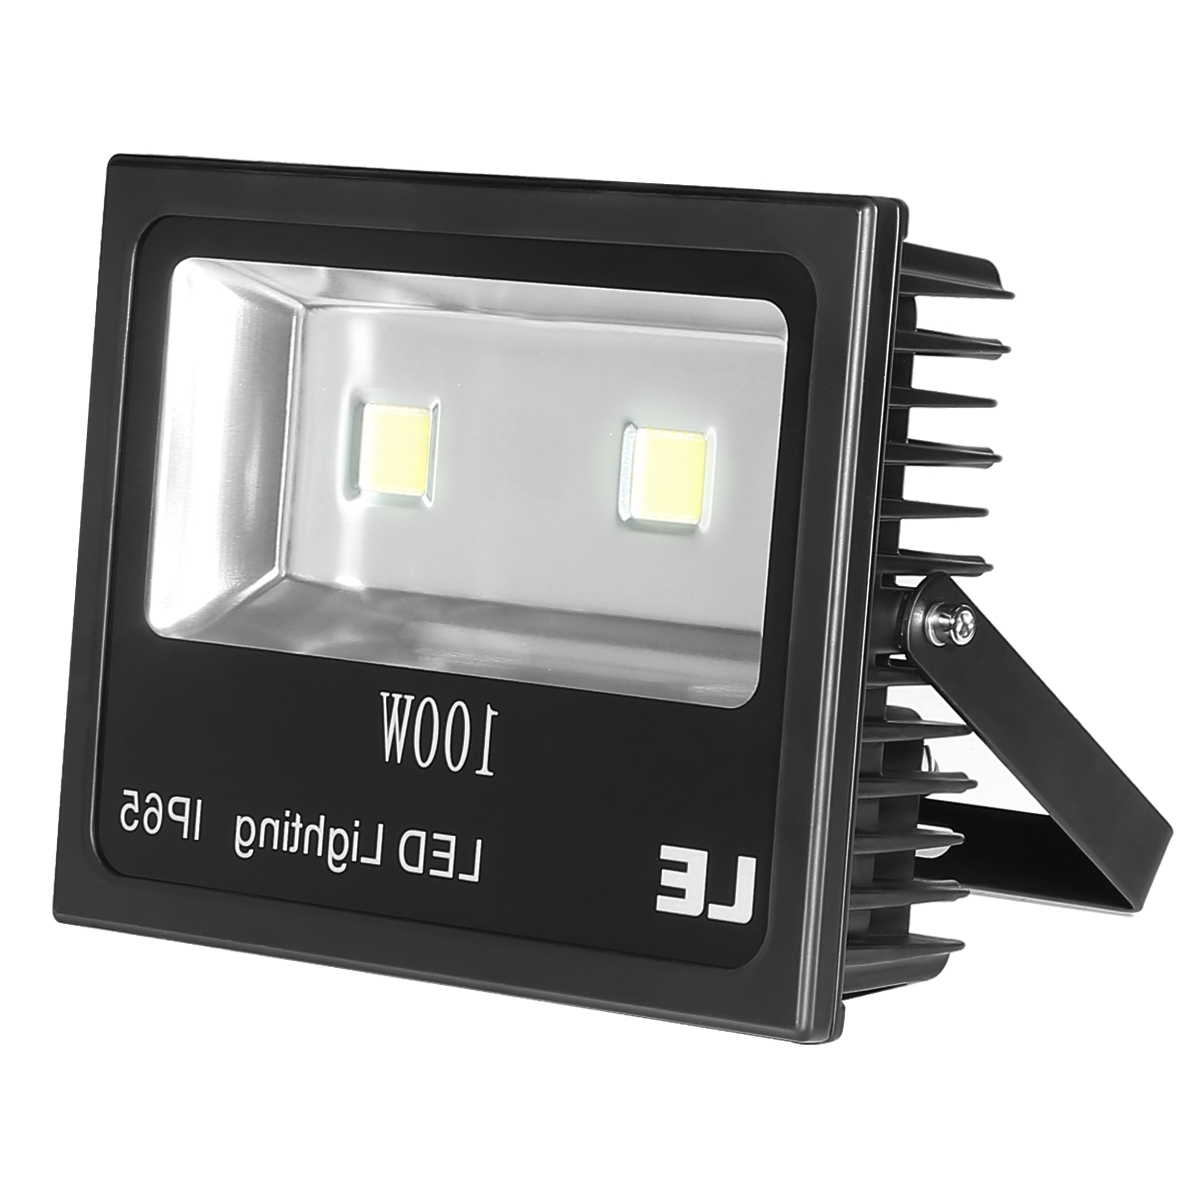 Best And Newest Hanging Outdoor Flood Lights With 100w Led Floodlights, Waterproof 10150lm Outdoor Security Lights (View 17 of 20)